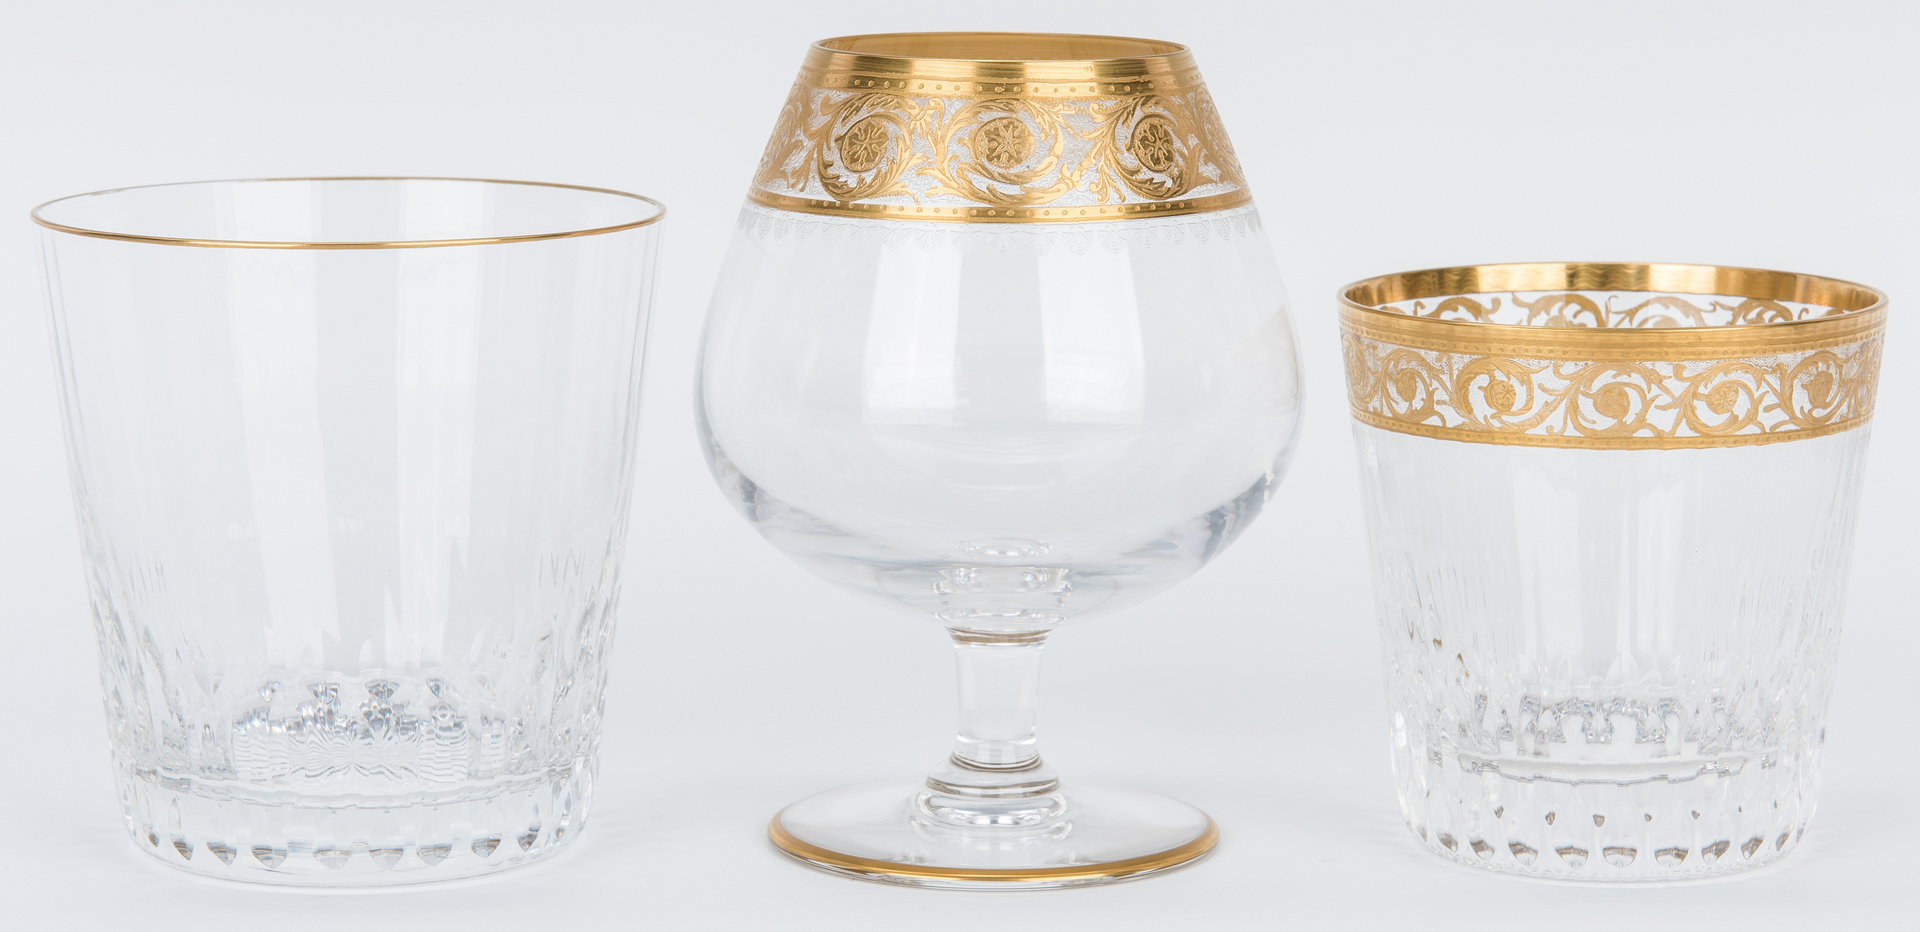 Lot 473:  St. Louis Crystal Ice Bucket w/ 6 Glasses